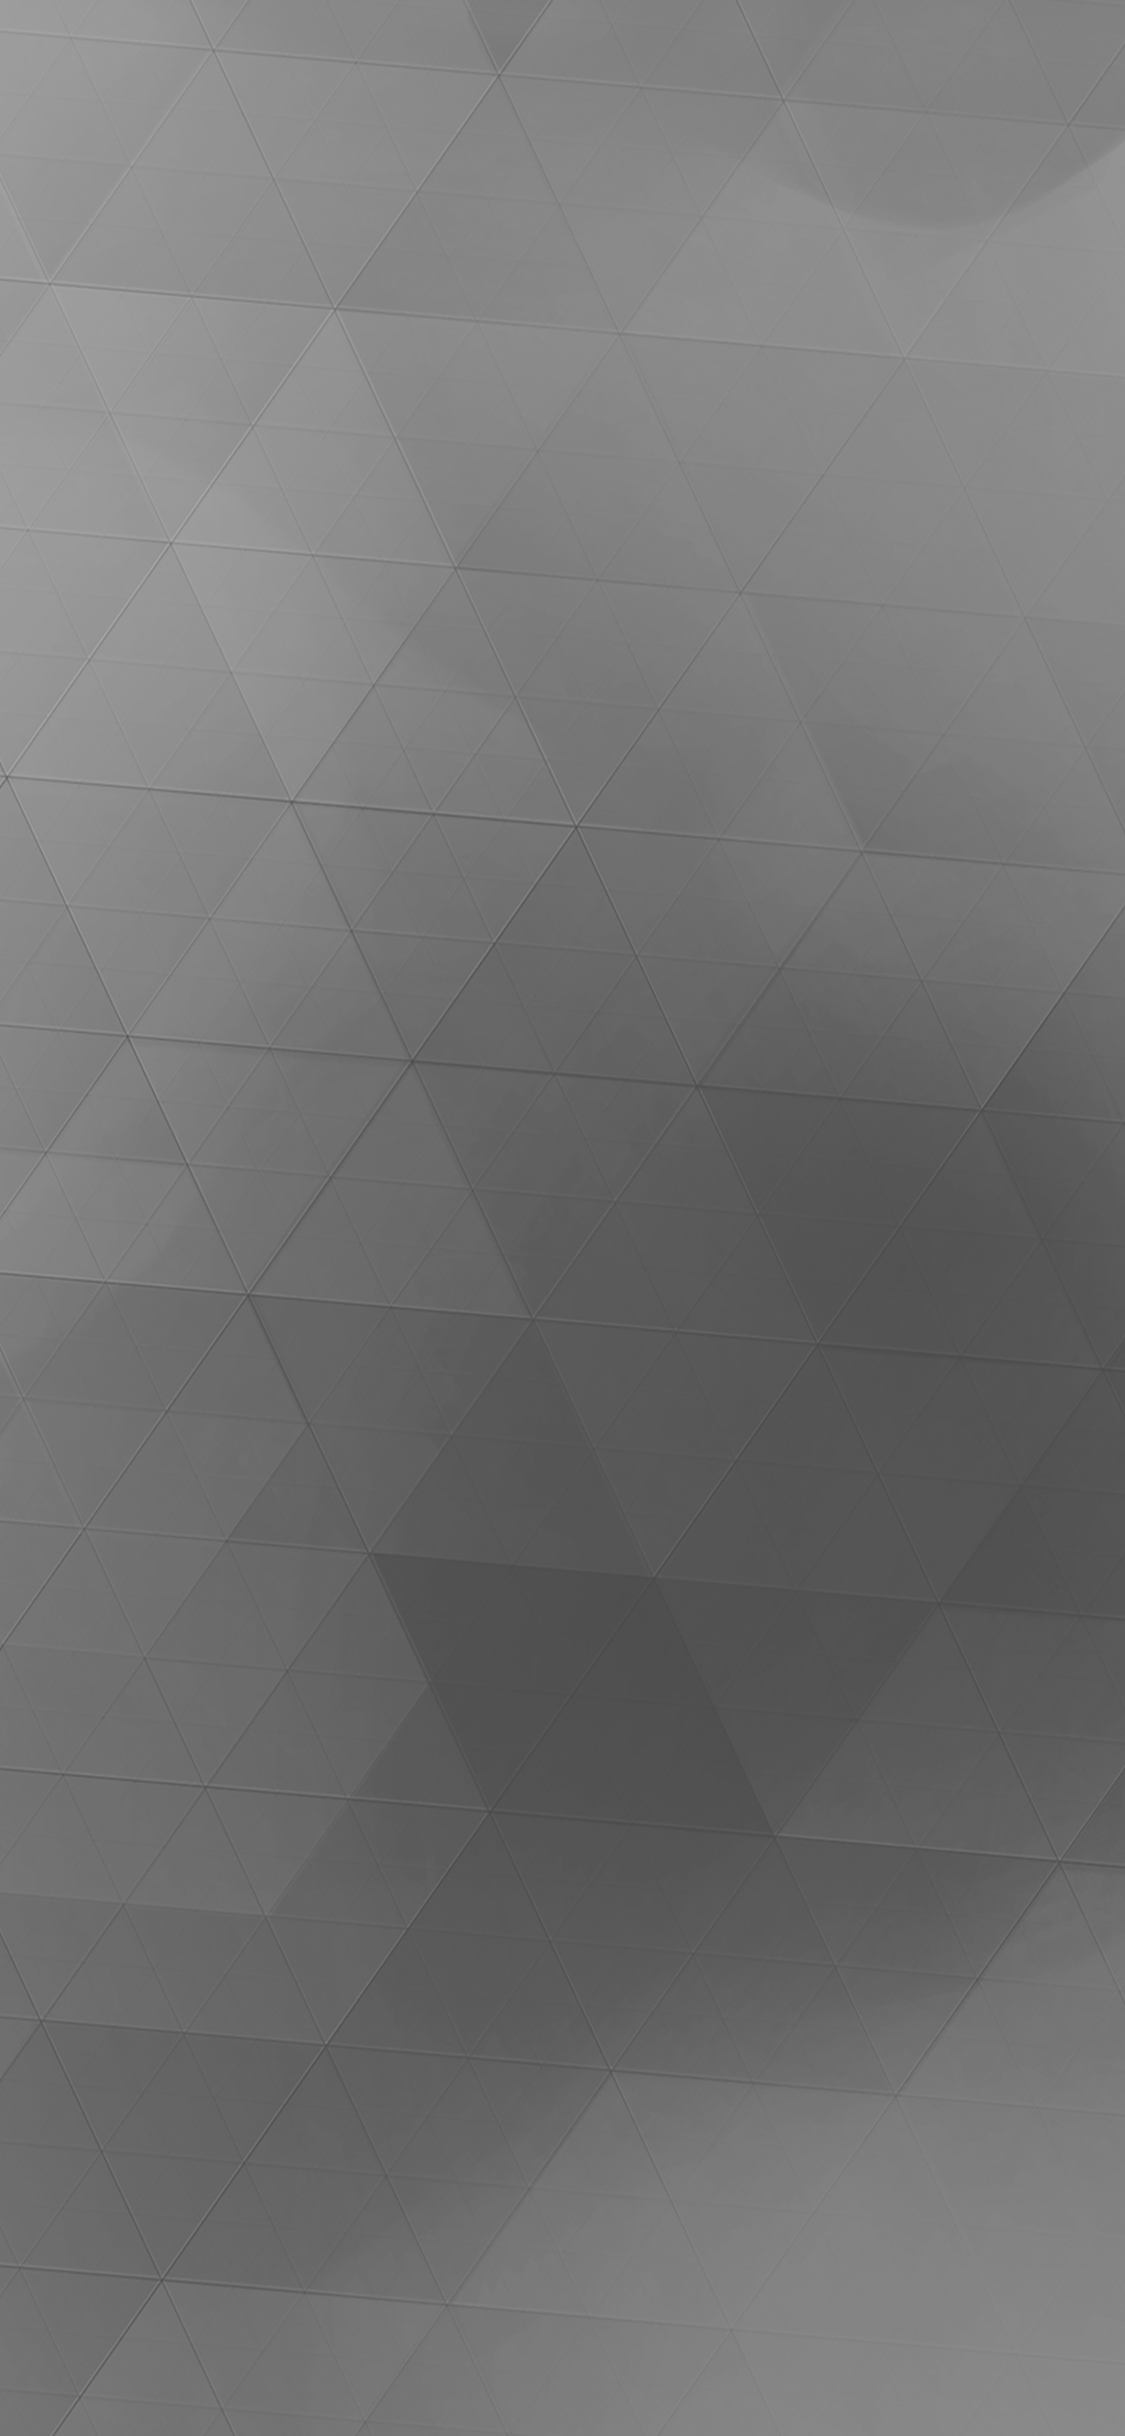 iPhoneXpapers.com-Apple-iPhone-wallpaper-vb72-wallpaper-android-gray-wall-pattern